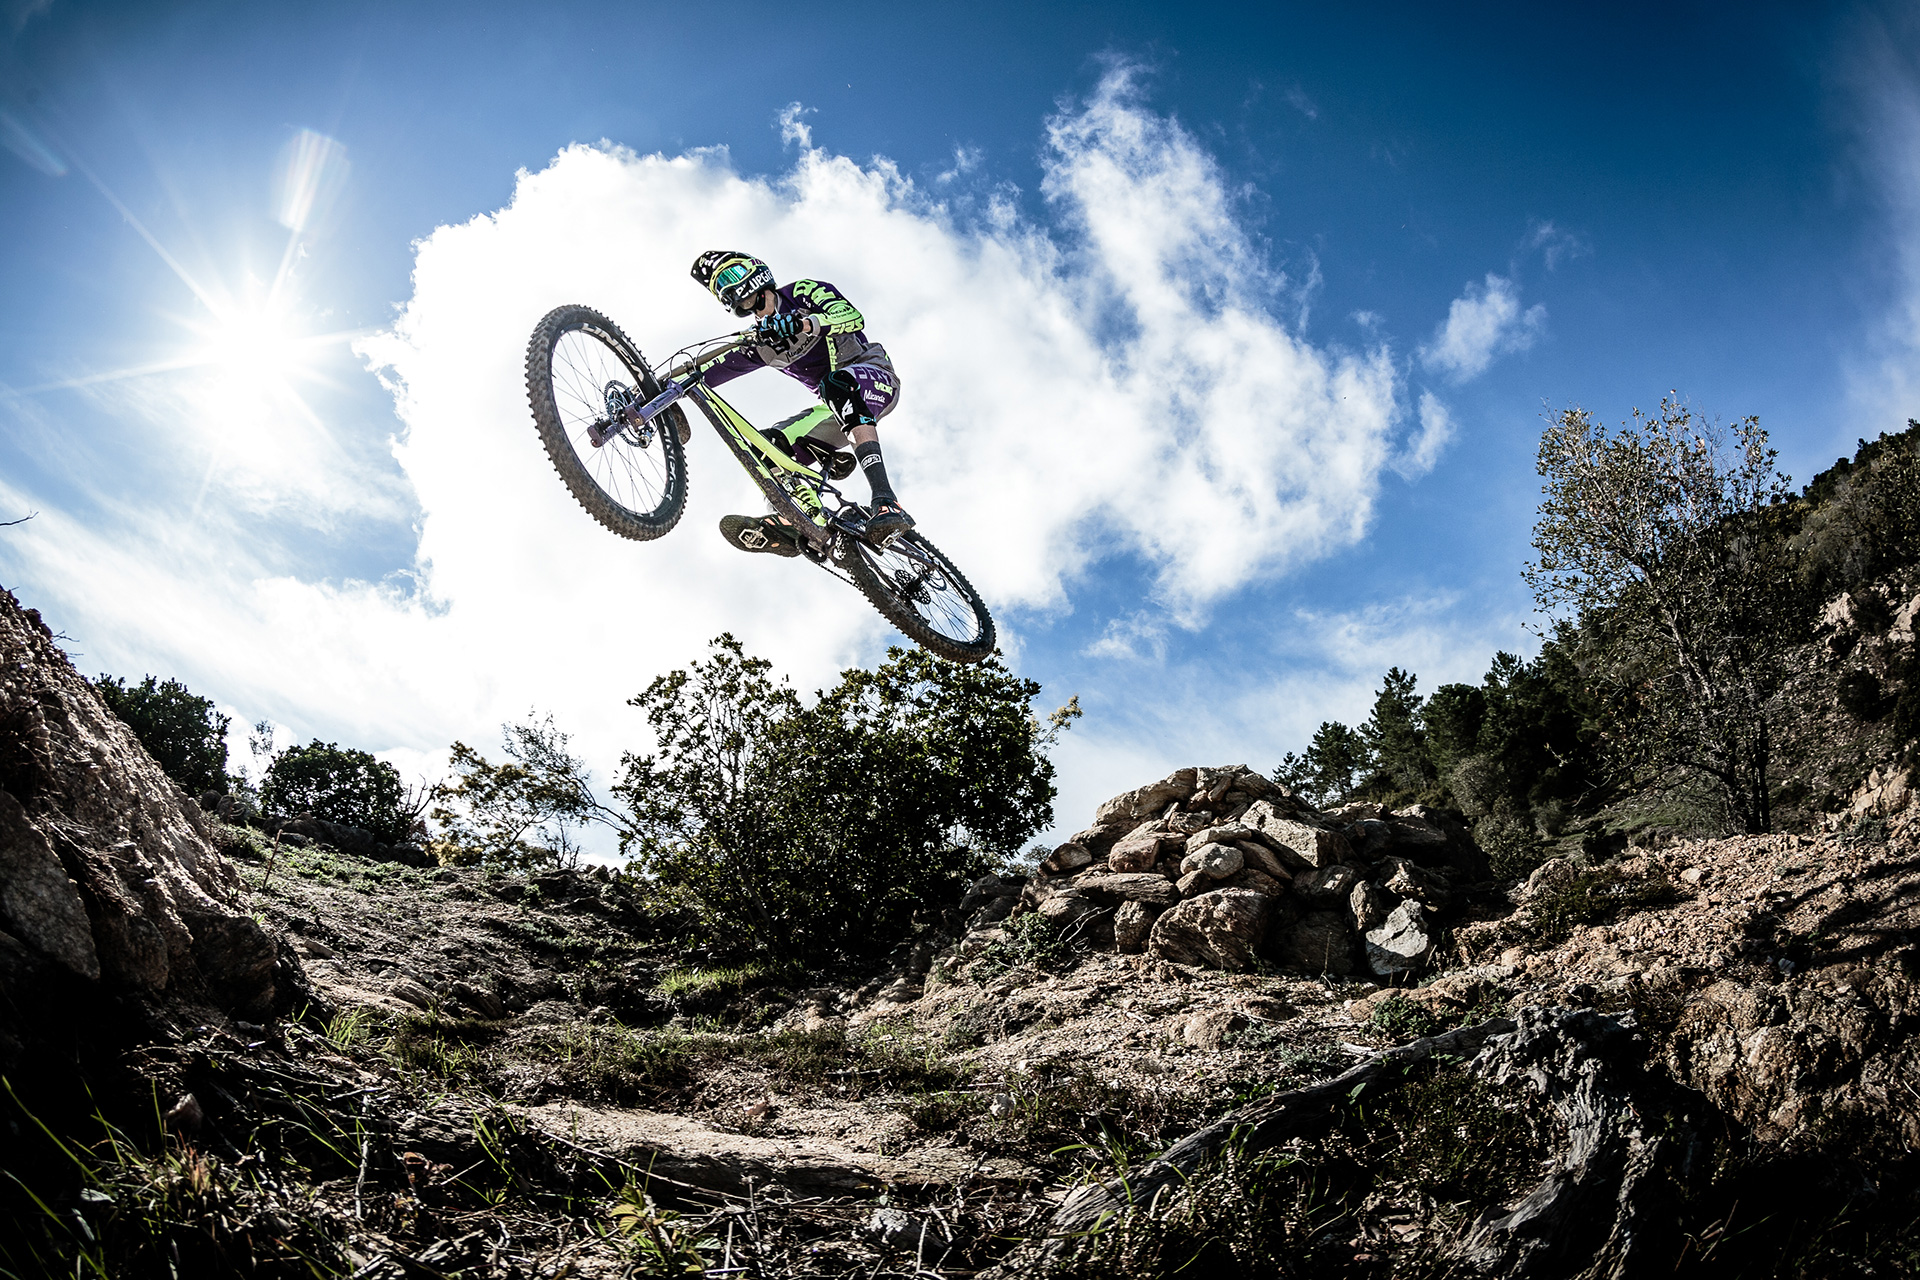 Formula join forces with Team BH for the Enduro World Series – Formula